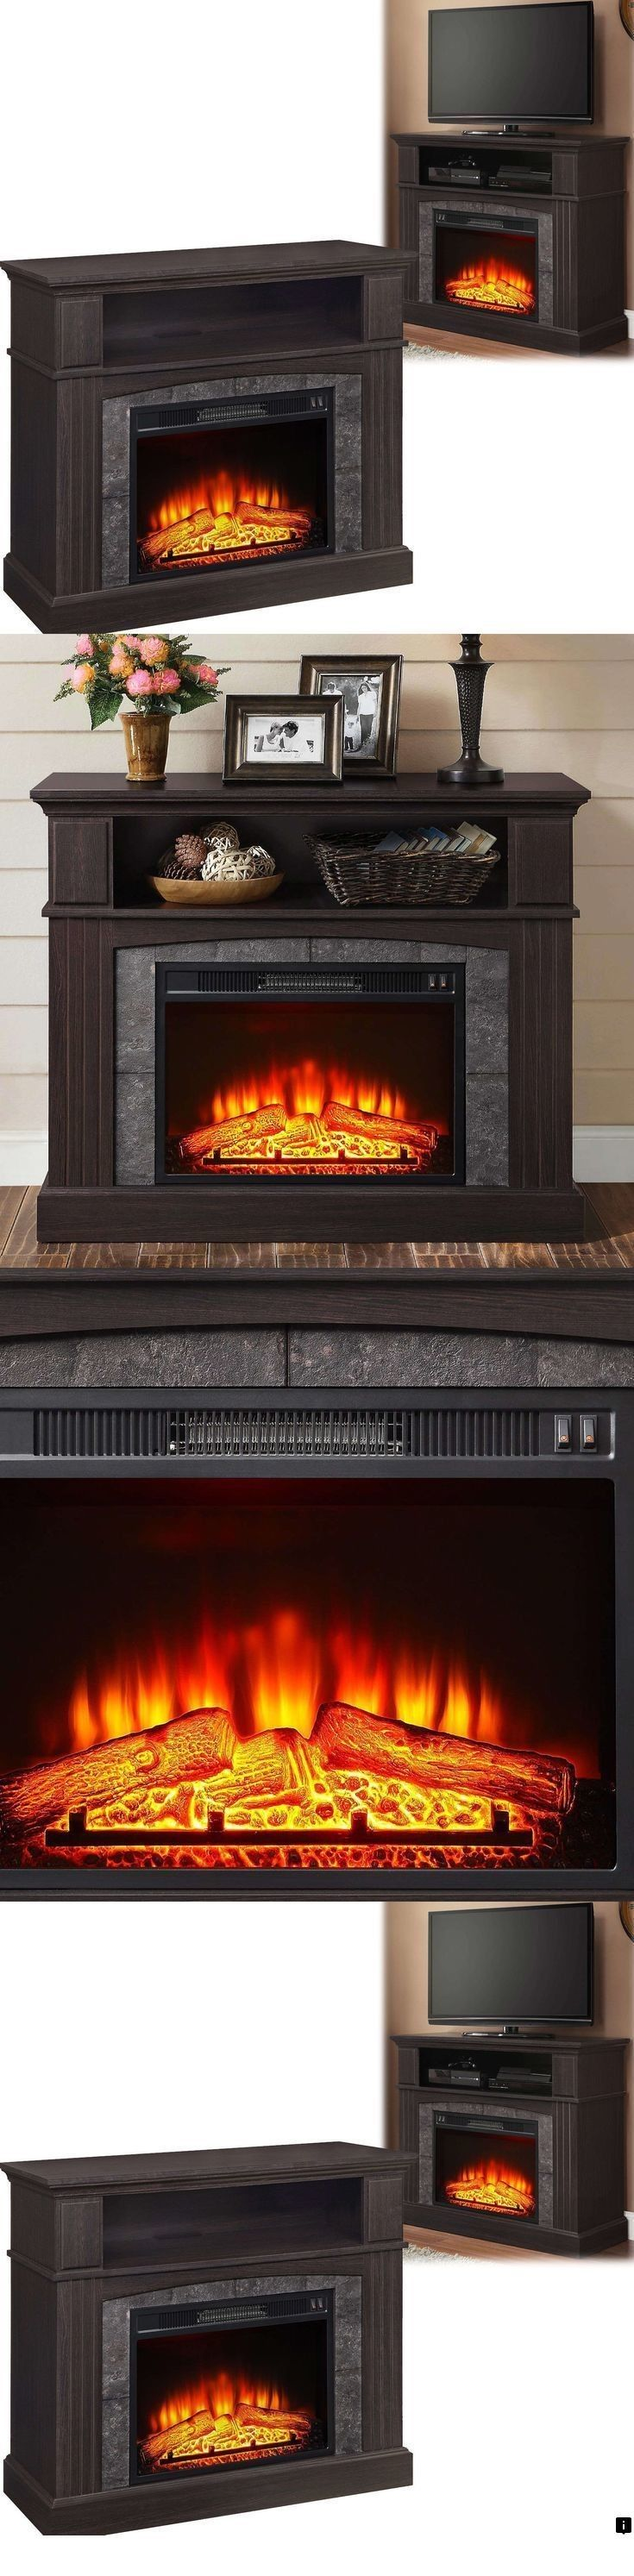 Want To Know More About Fireplace Tv Stand Please Click Here For